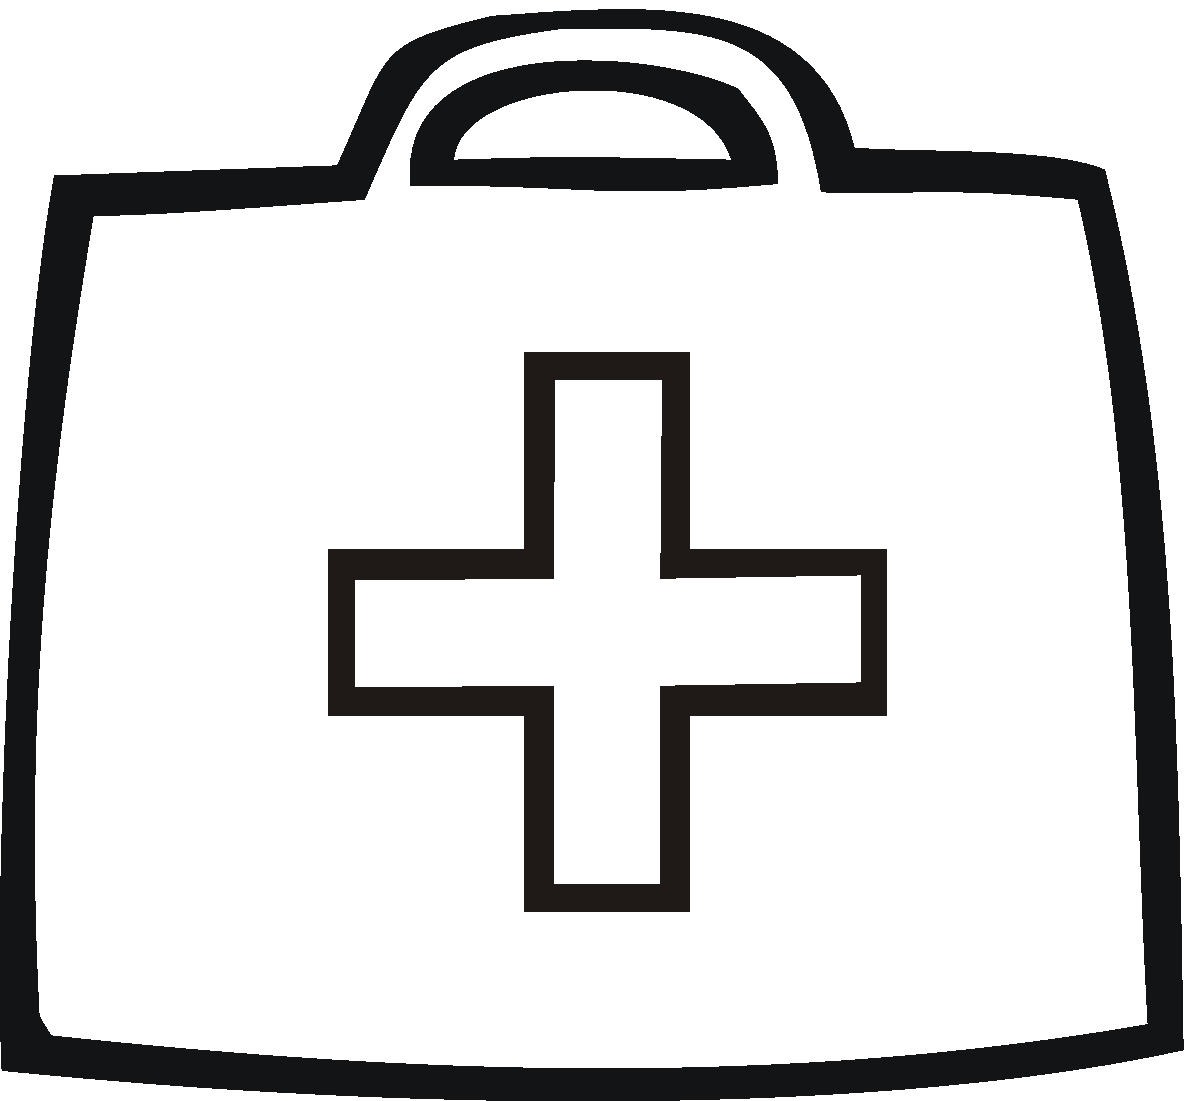 Free First Aid Kit Clipart Black And White, Download Free.